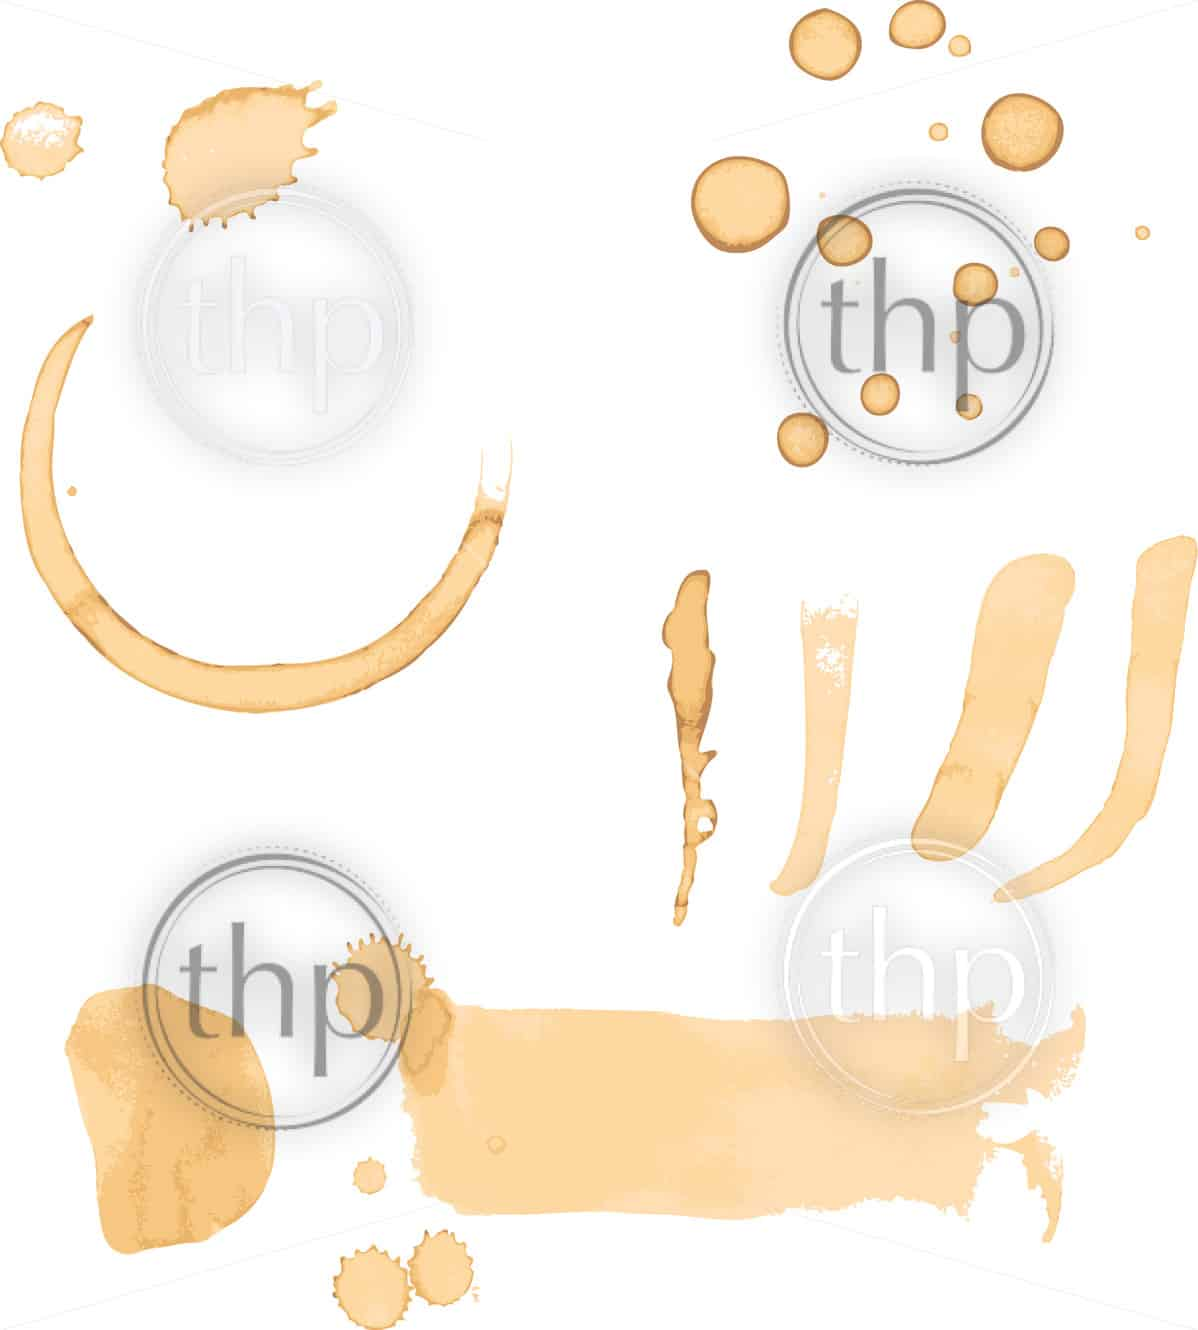 Coffee stains, drips and marks isolated on white in vector